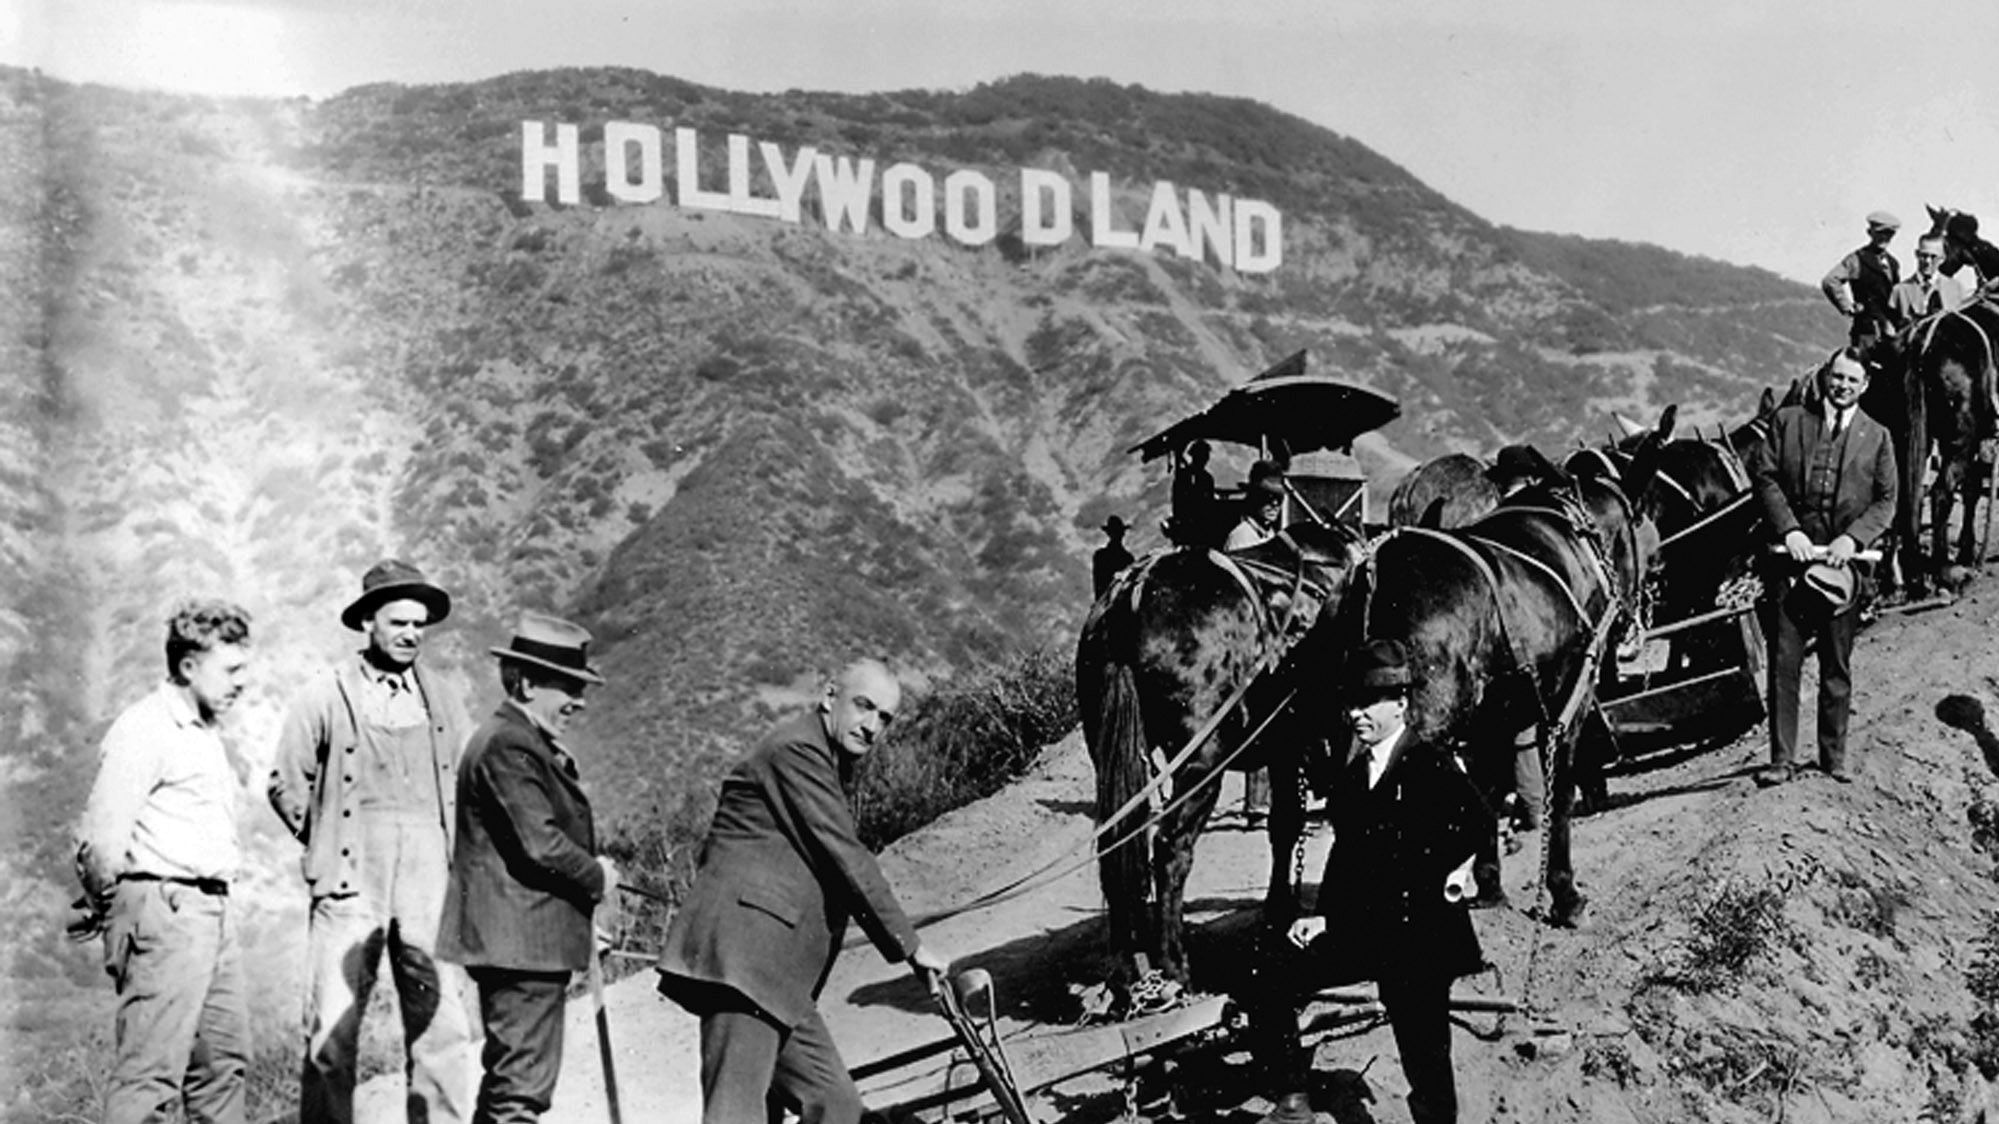 A 1929 publicity photo for the Hollywoodland groundbreaking shows a plow, mules and surveyors.